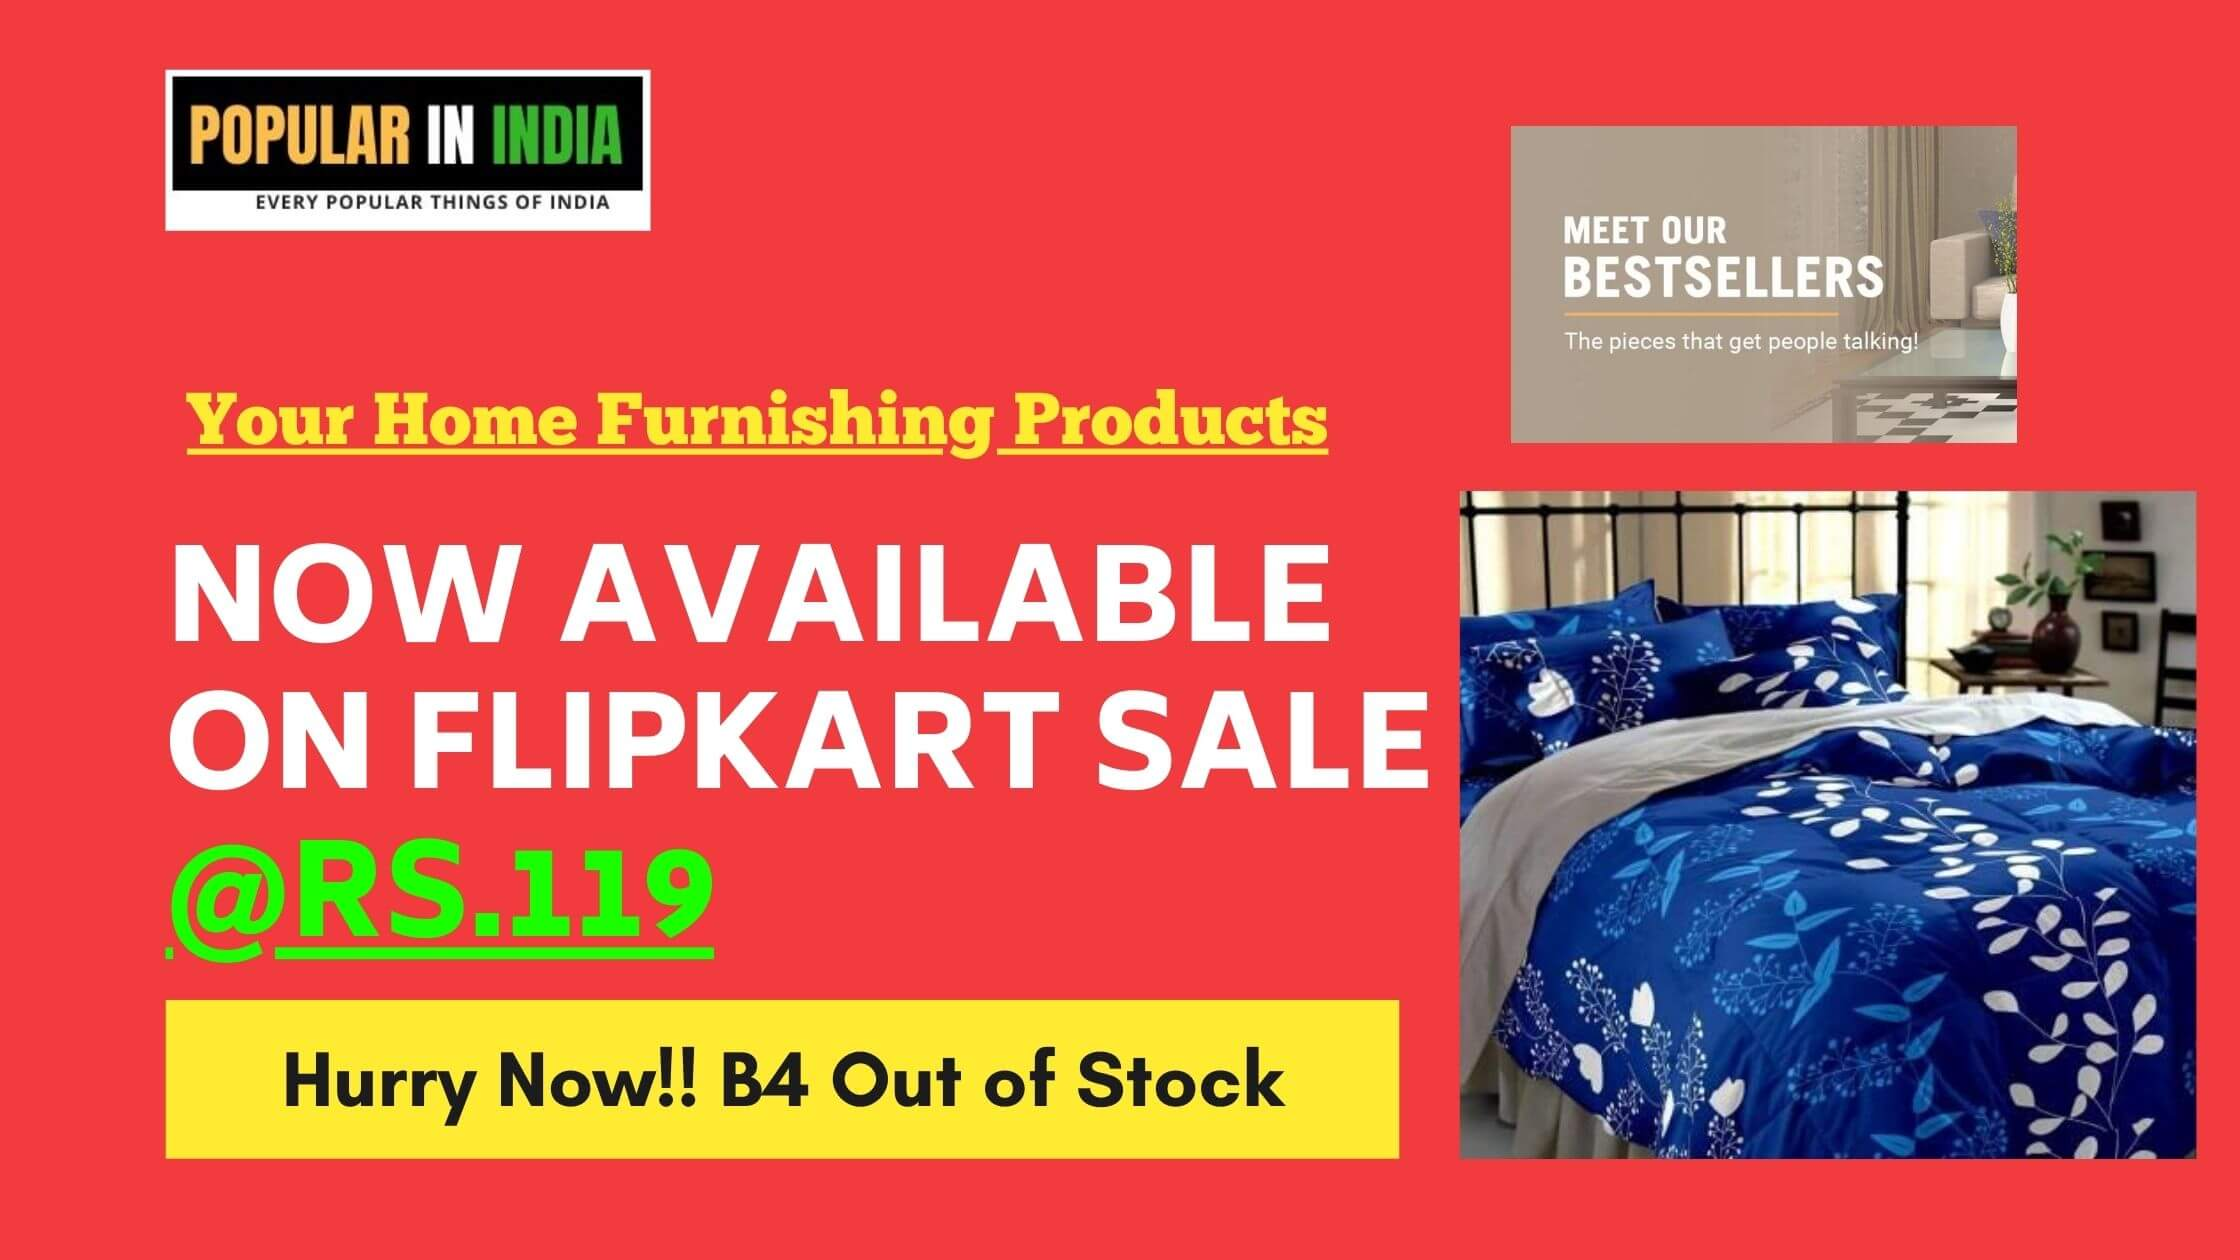 Flipkart Big Saving Day Sale on Home Furnishing popular in india